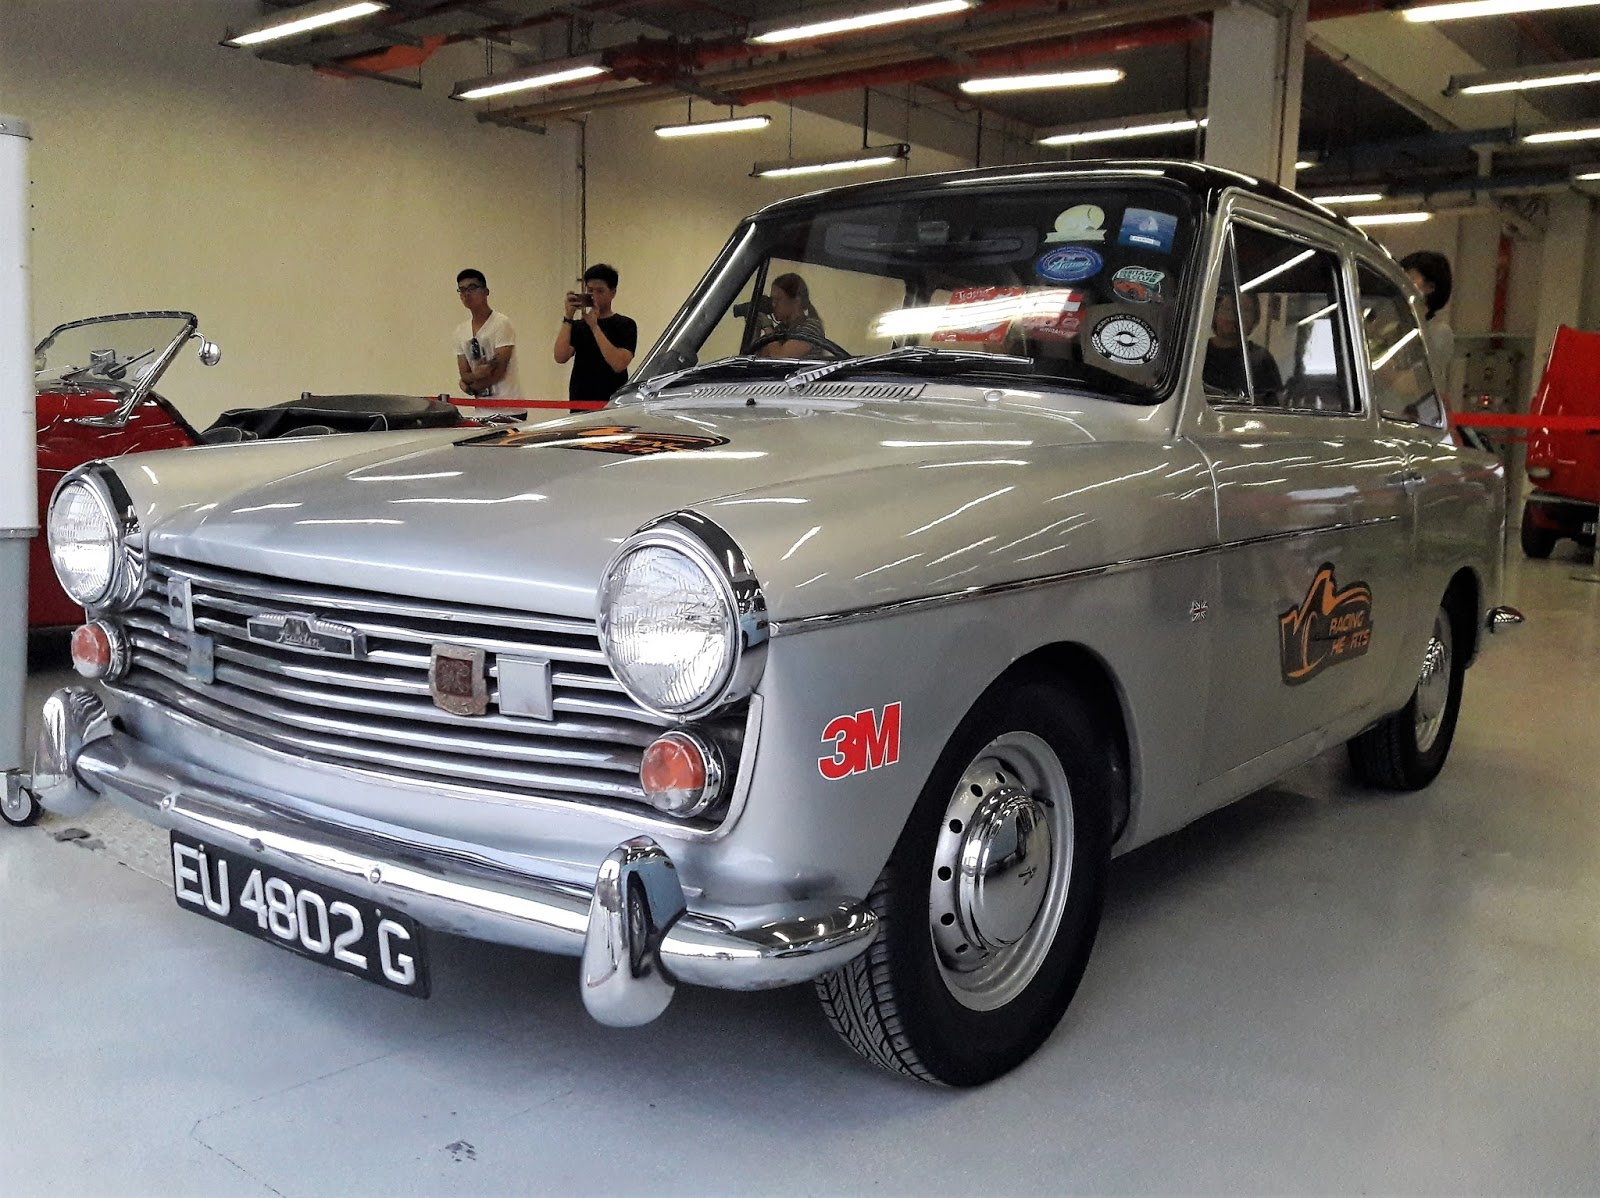 Singapore Vintage and Classic Cars: More than an old car #9 : Austin A40